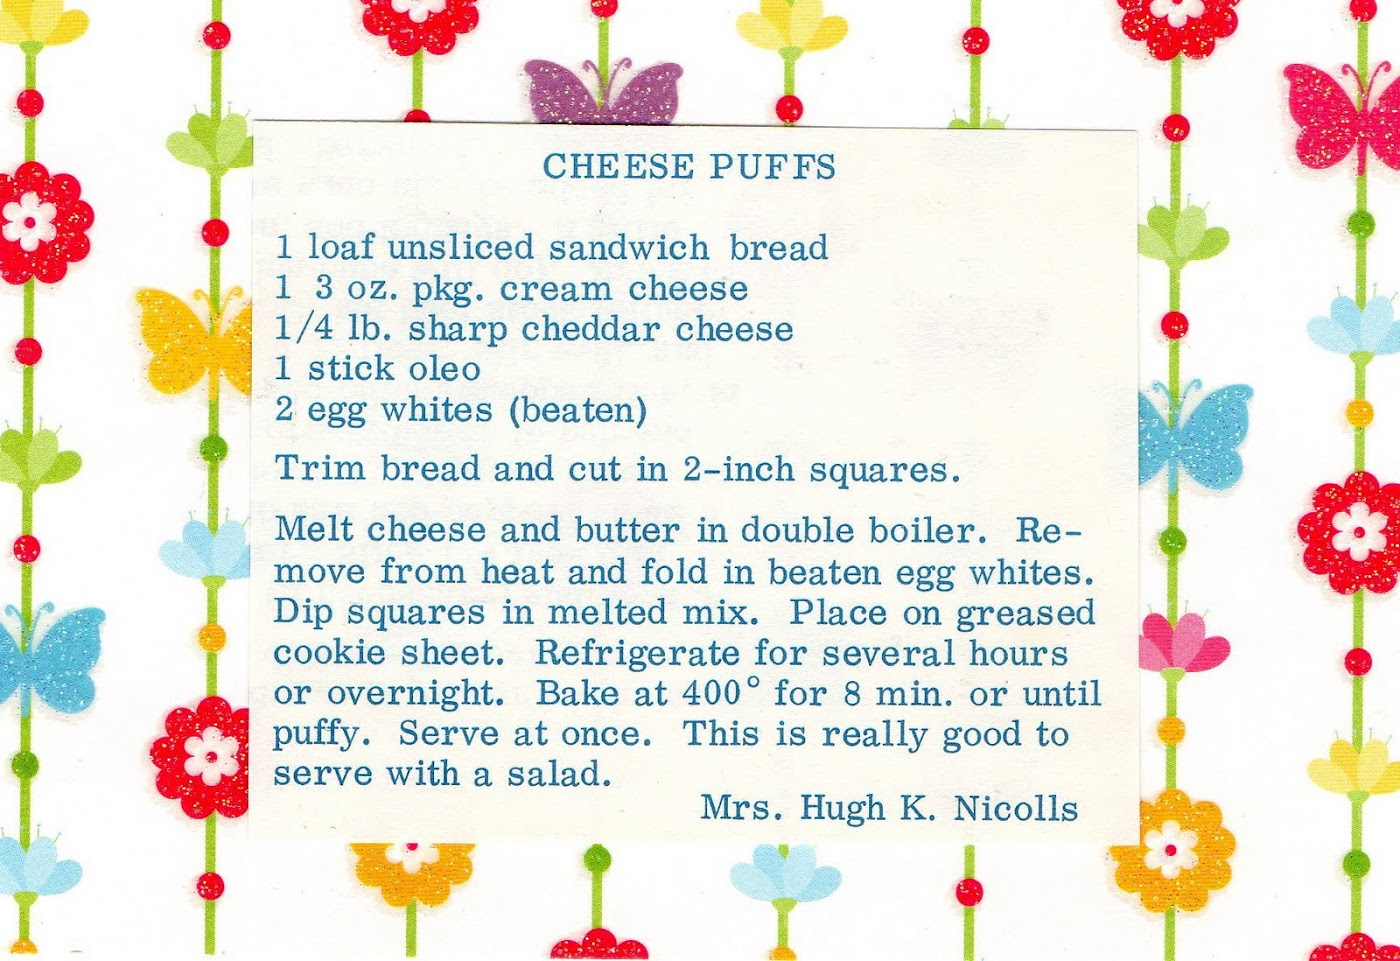 Cheese Puffs (quick recipe)